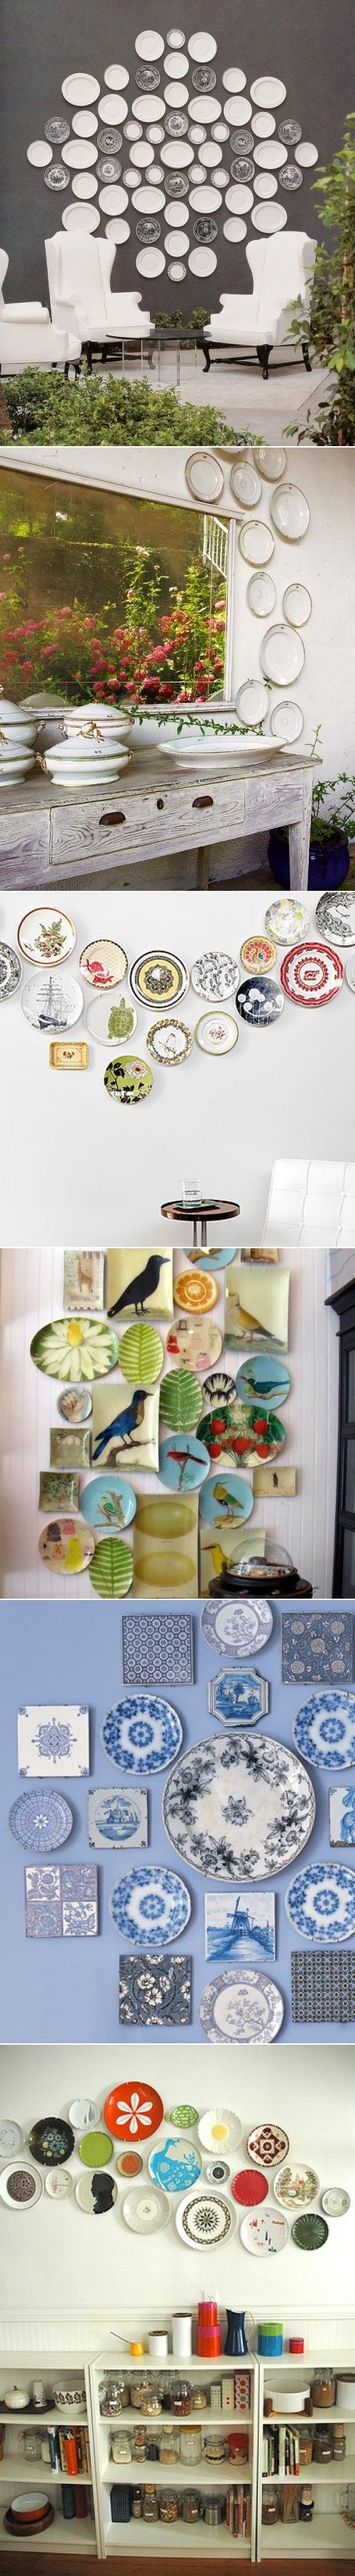 DIY Plates Wall Collage